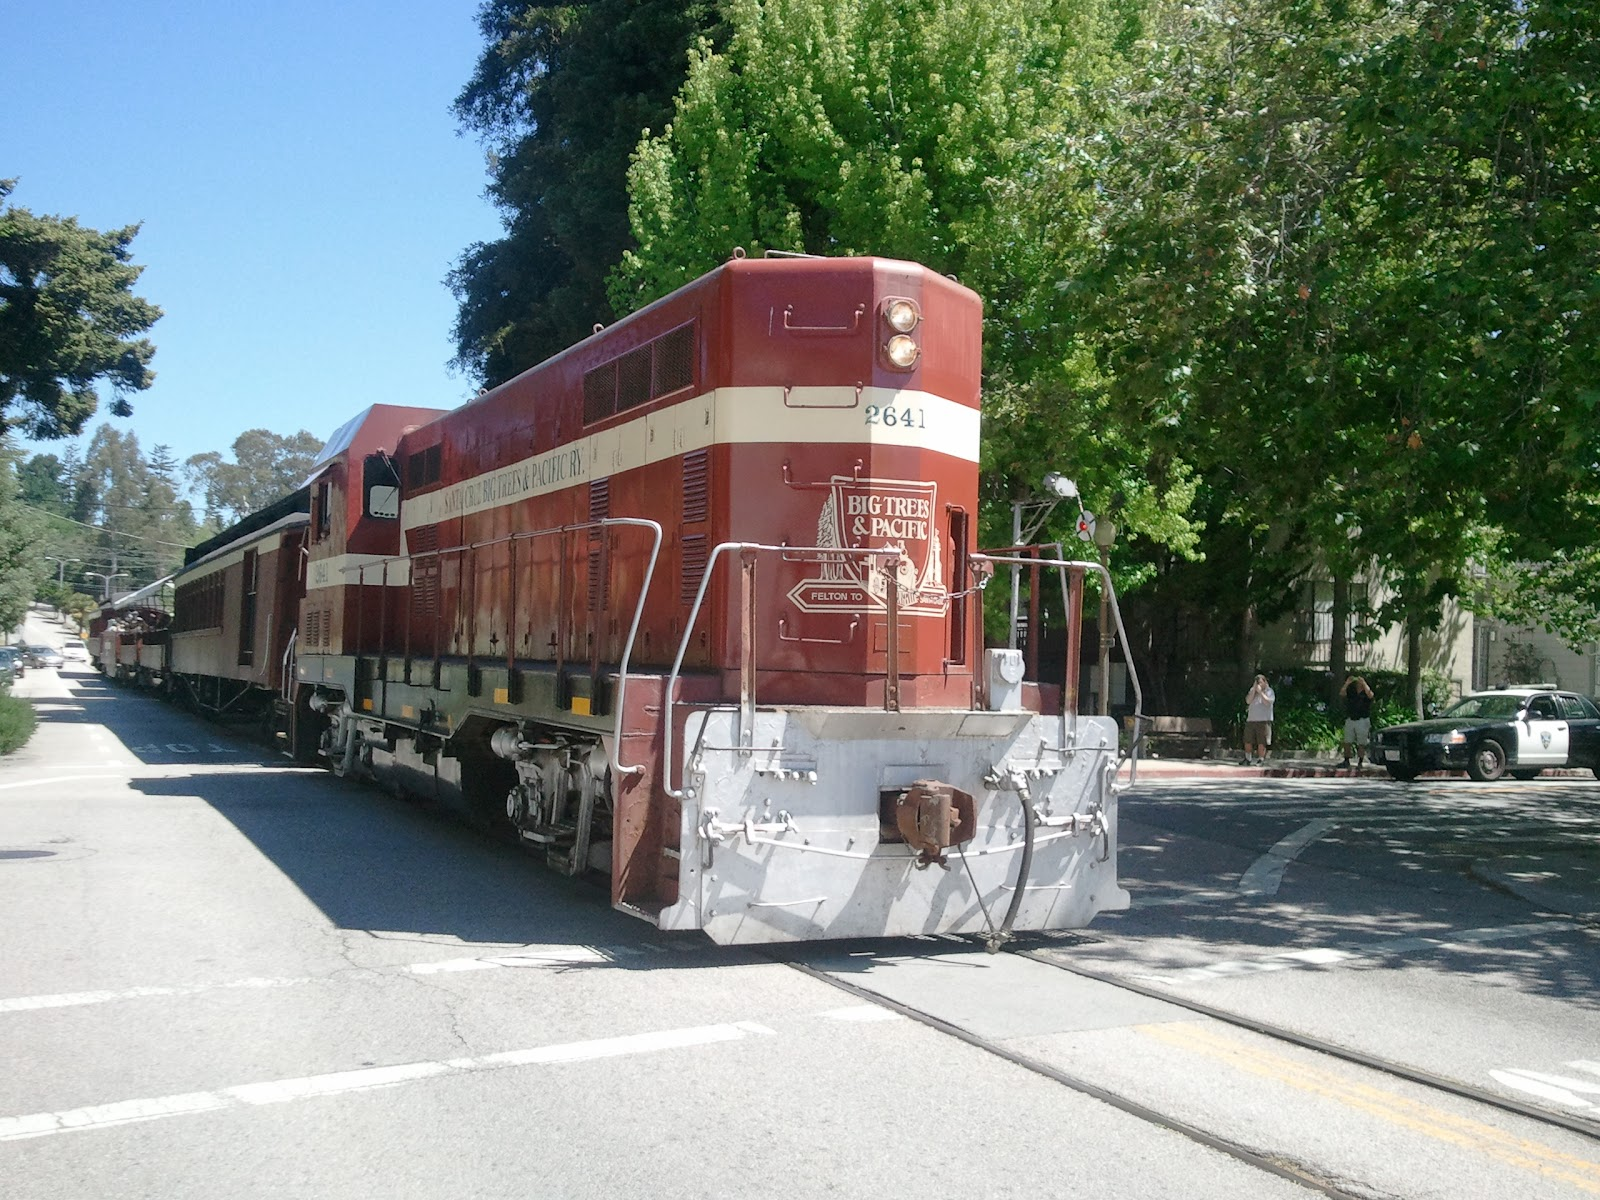 Now That It S Warm The Beach Train Brings People Down From Redwoods To Sea When Gets Santa Cruz Comes Right Middle Of Chestnut